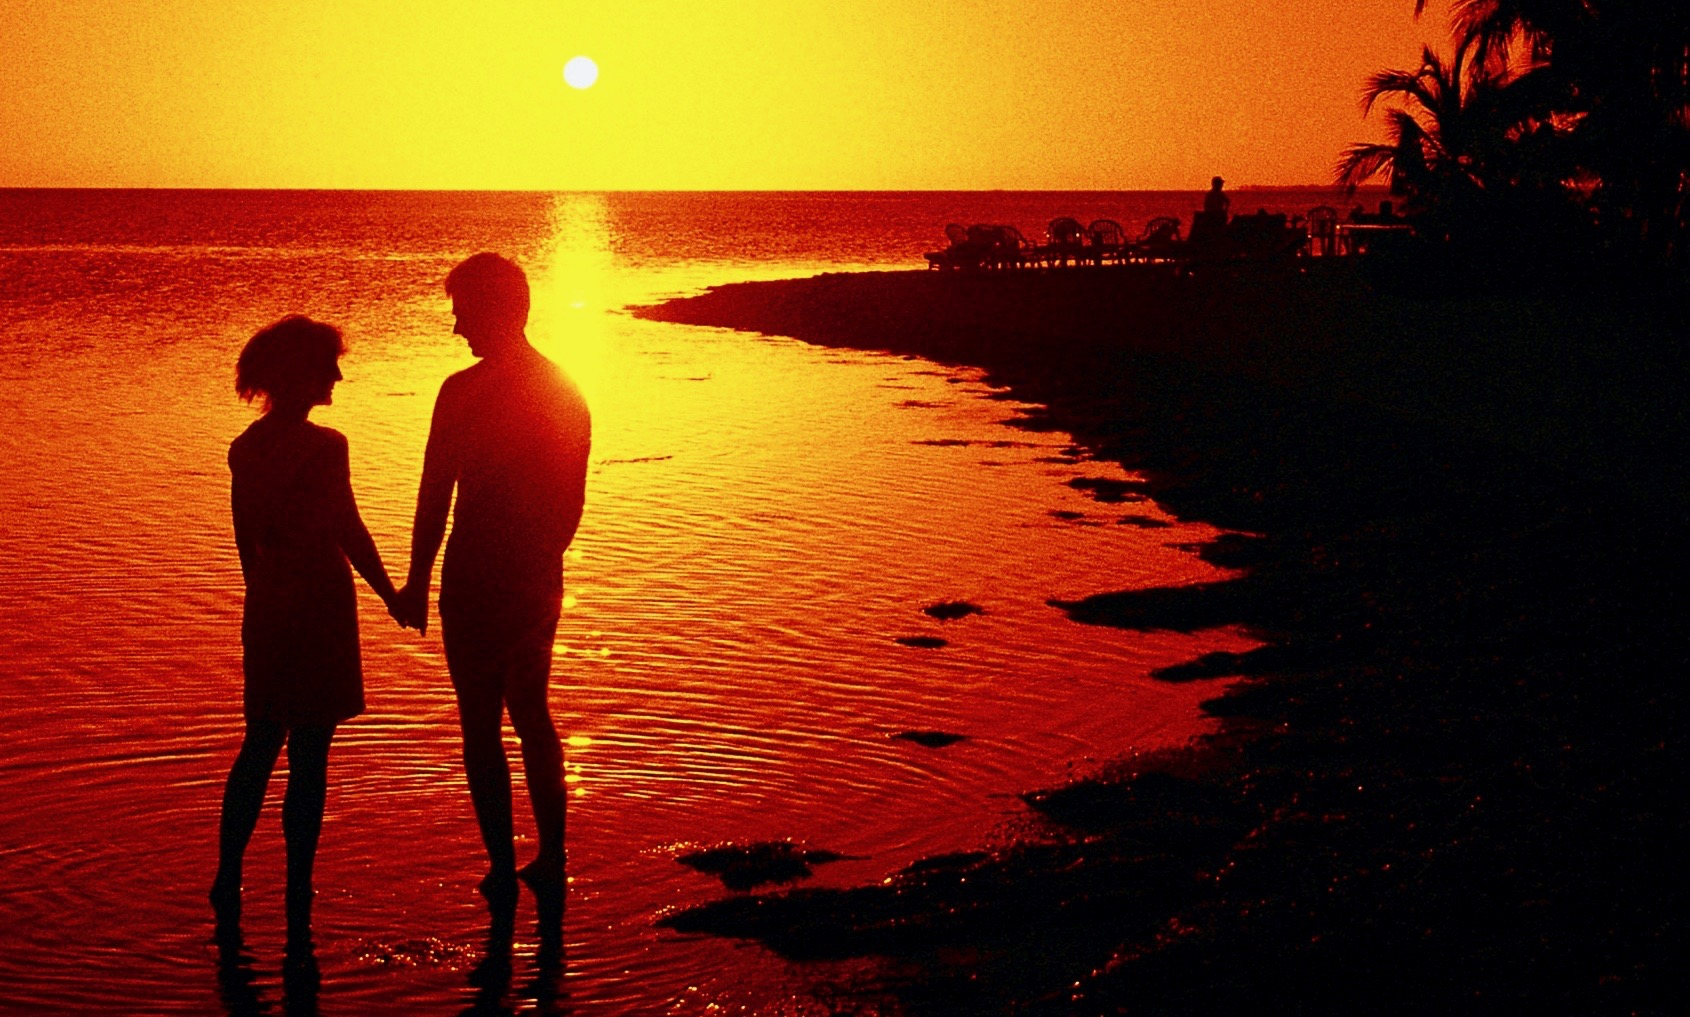 A loving couple holds hands in a beautiful sunset